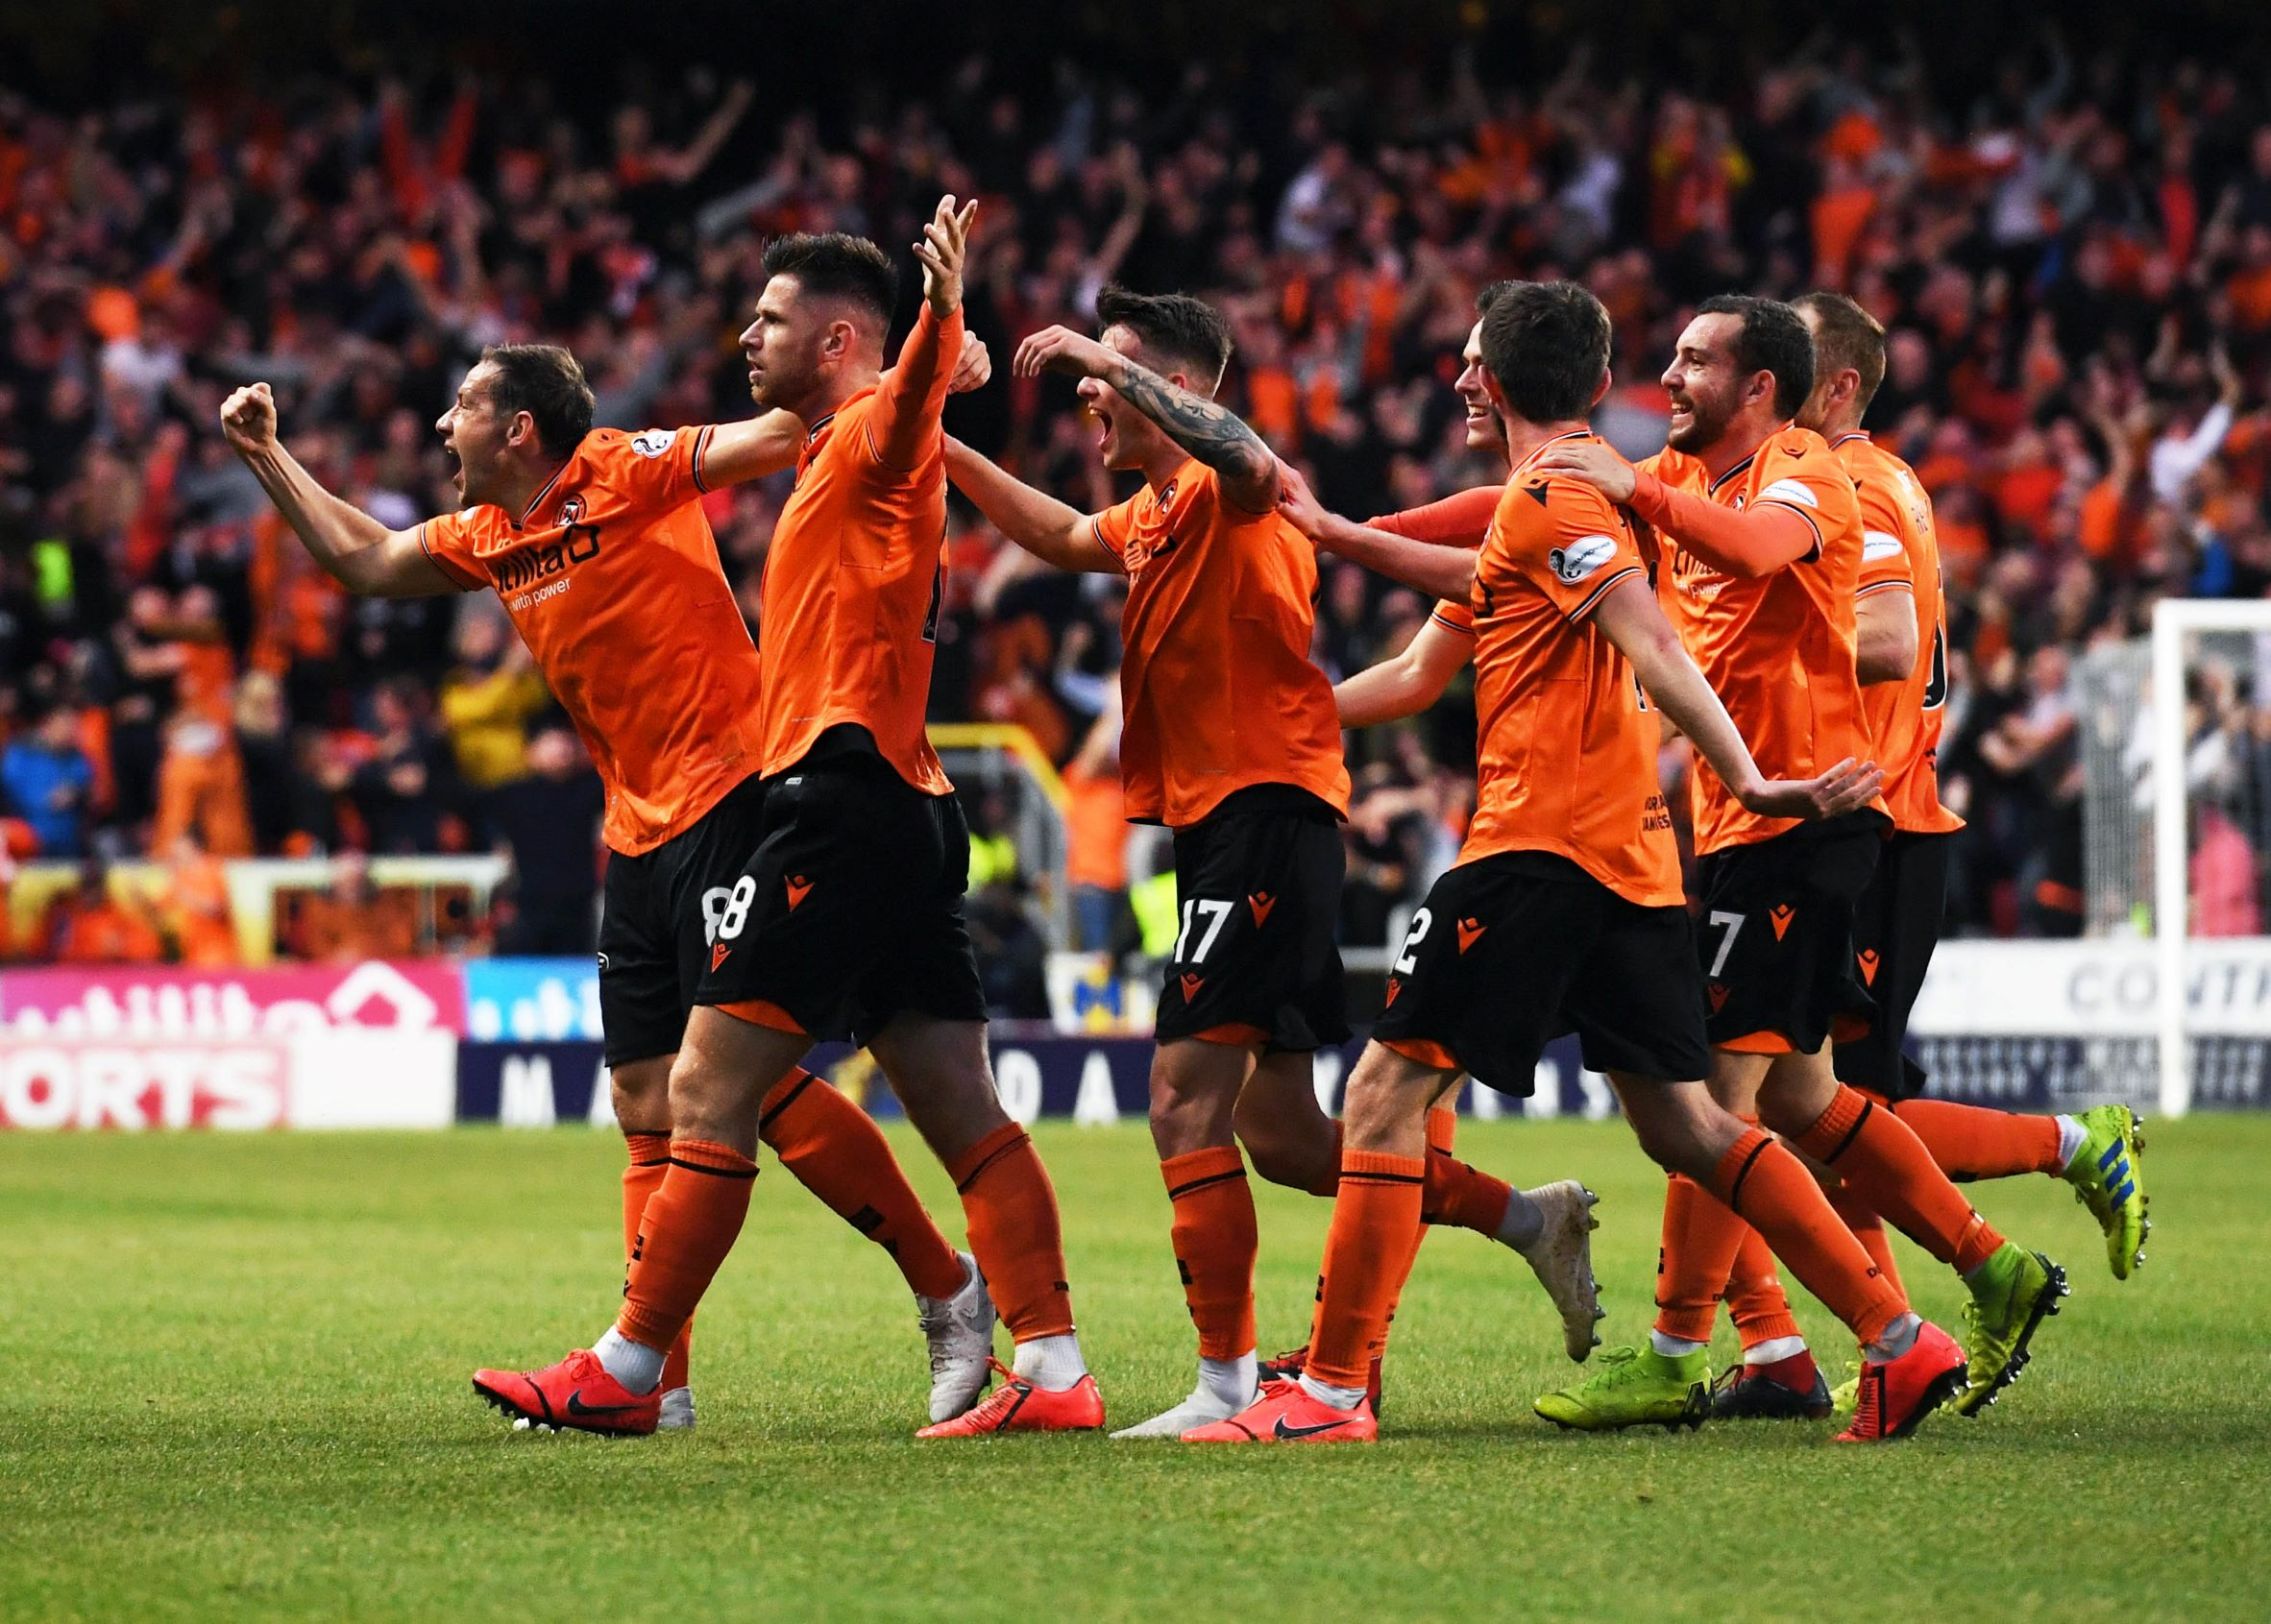 United's players celebrate Calum Butcher's opening goal.